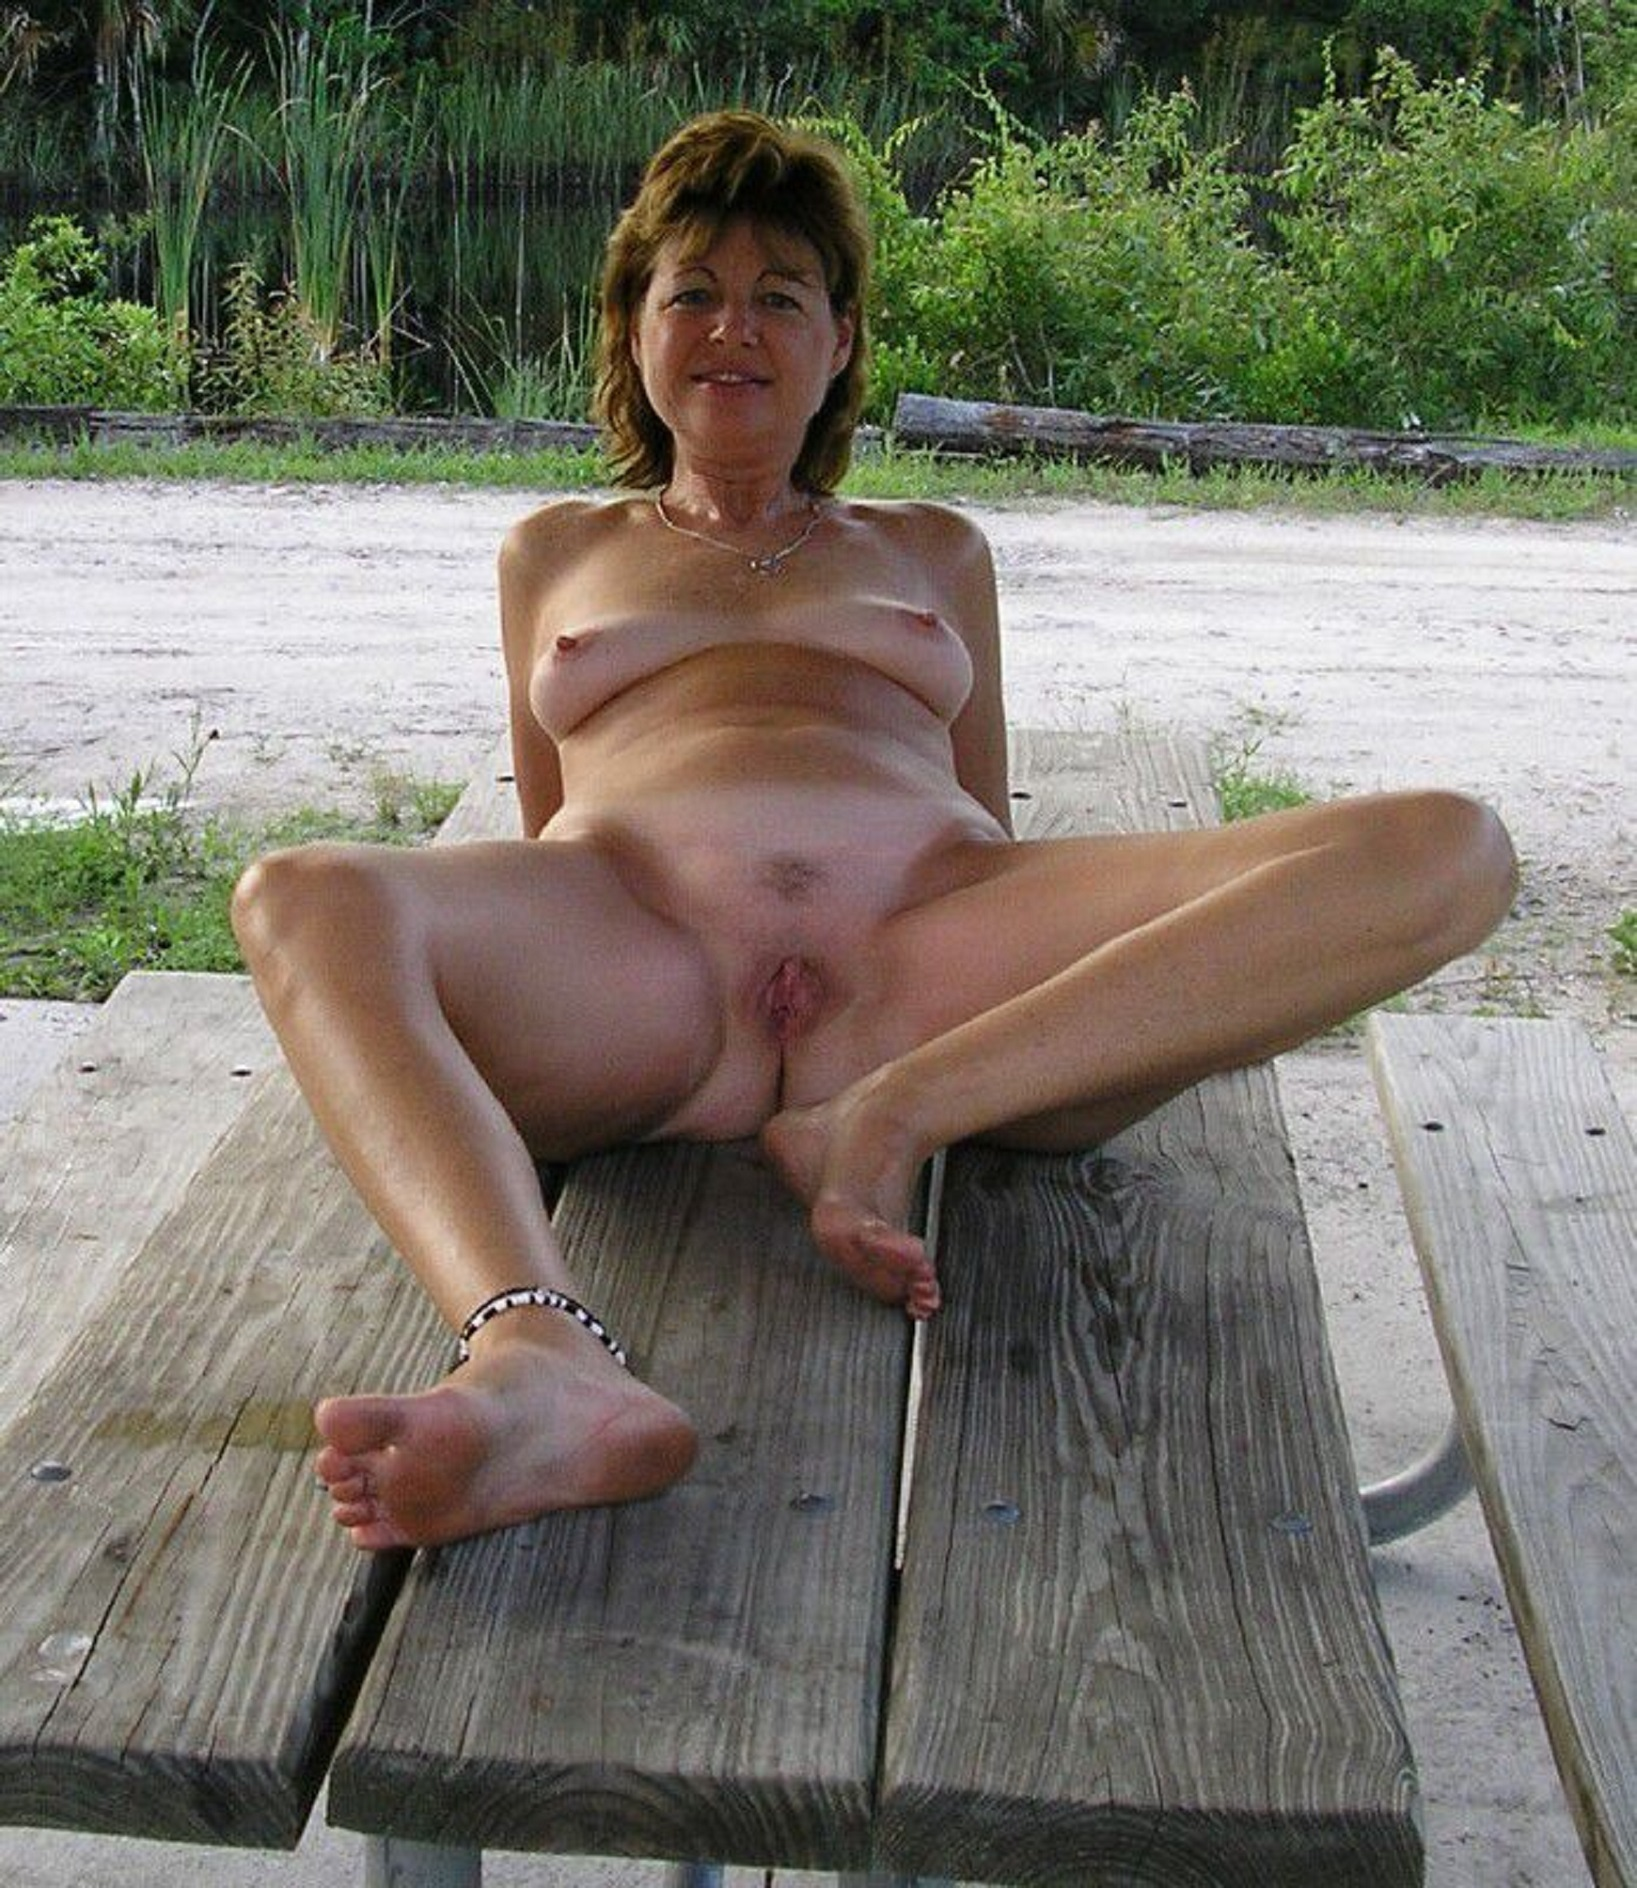 Friends Wife Nude On Camping Trip